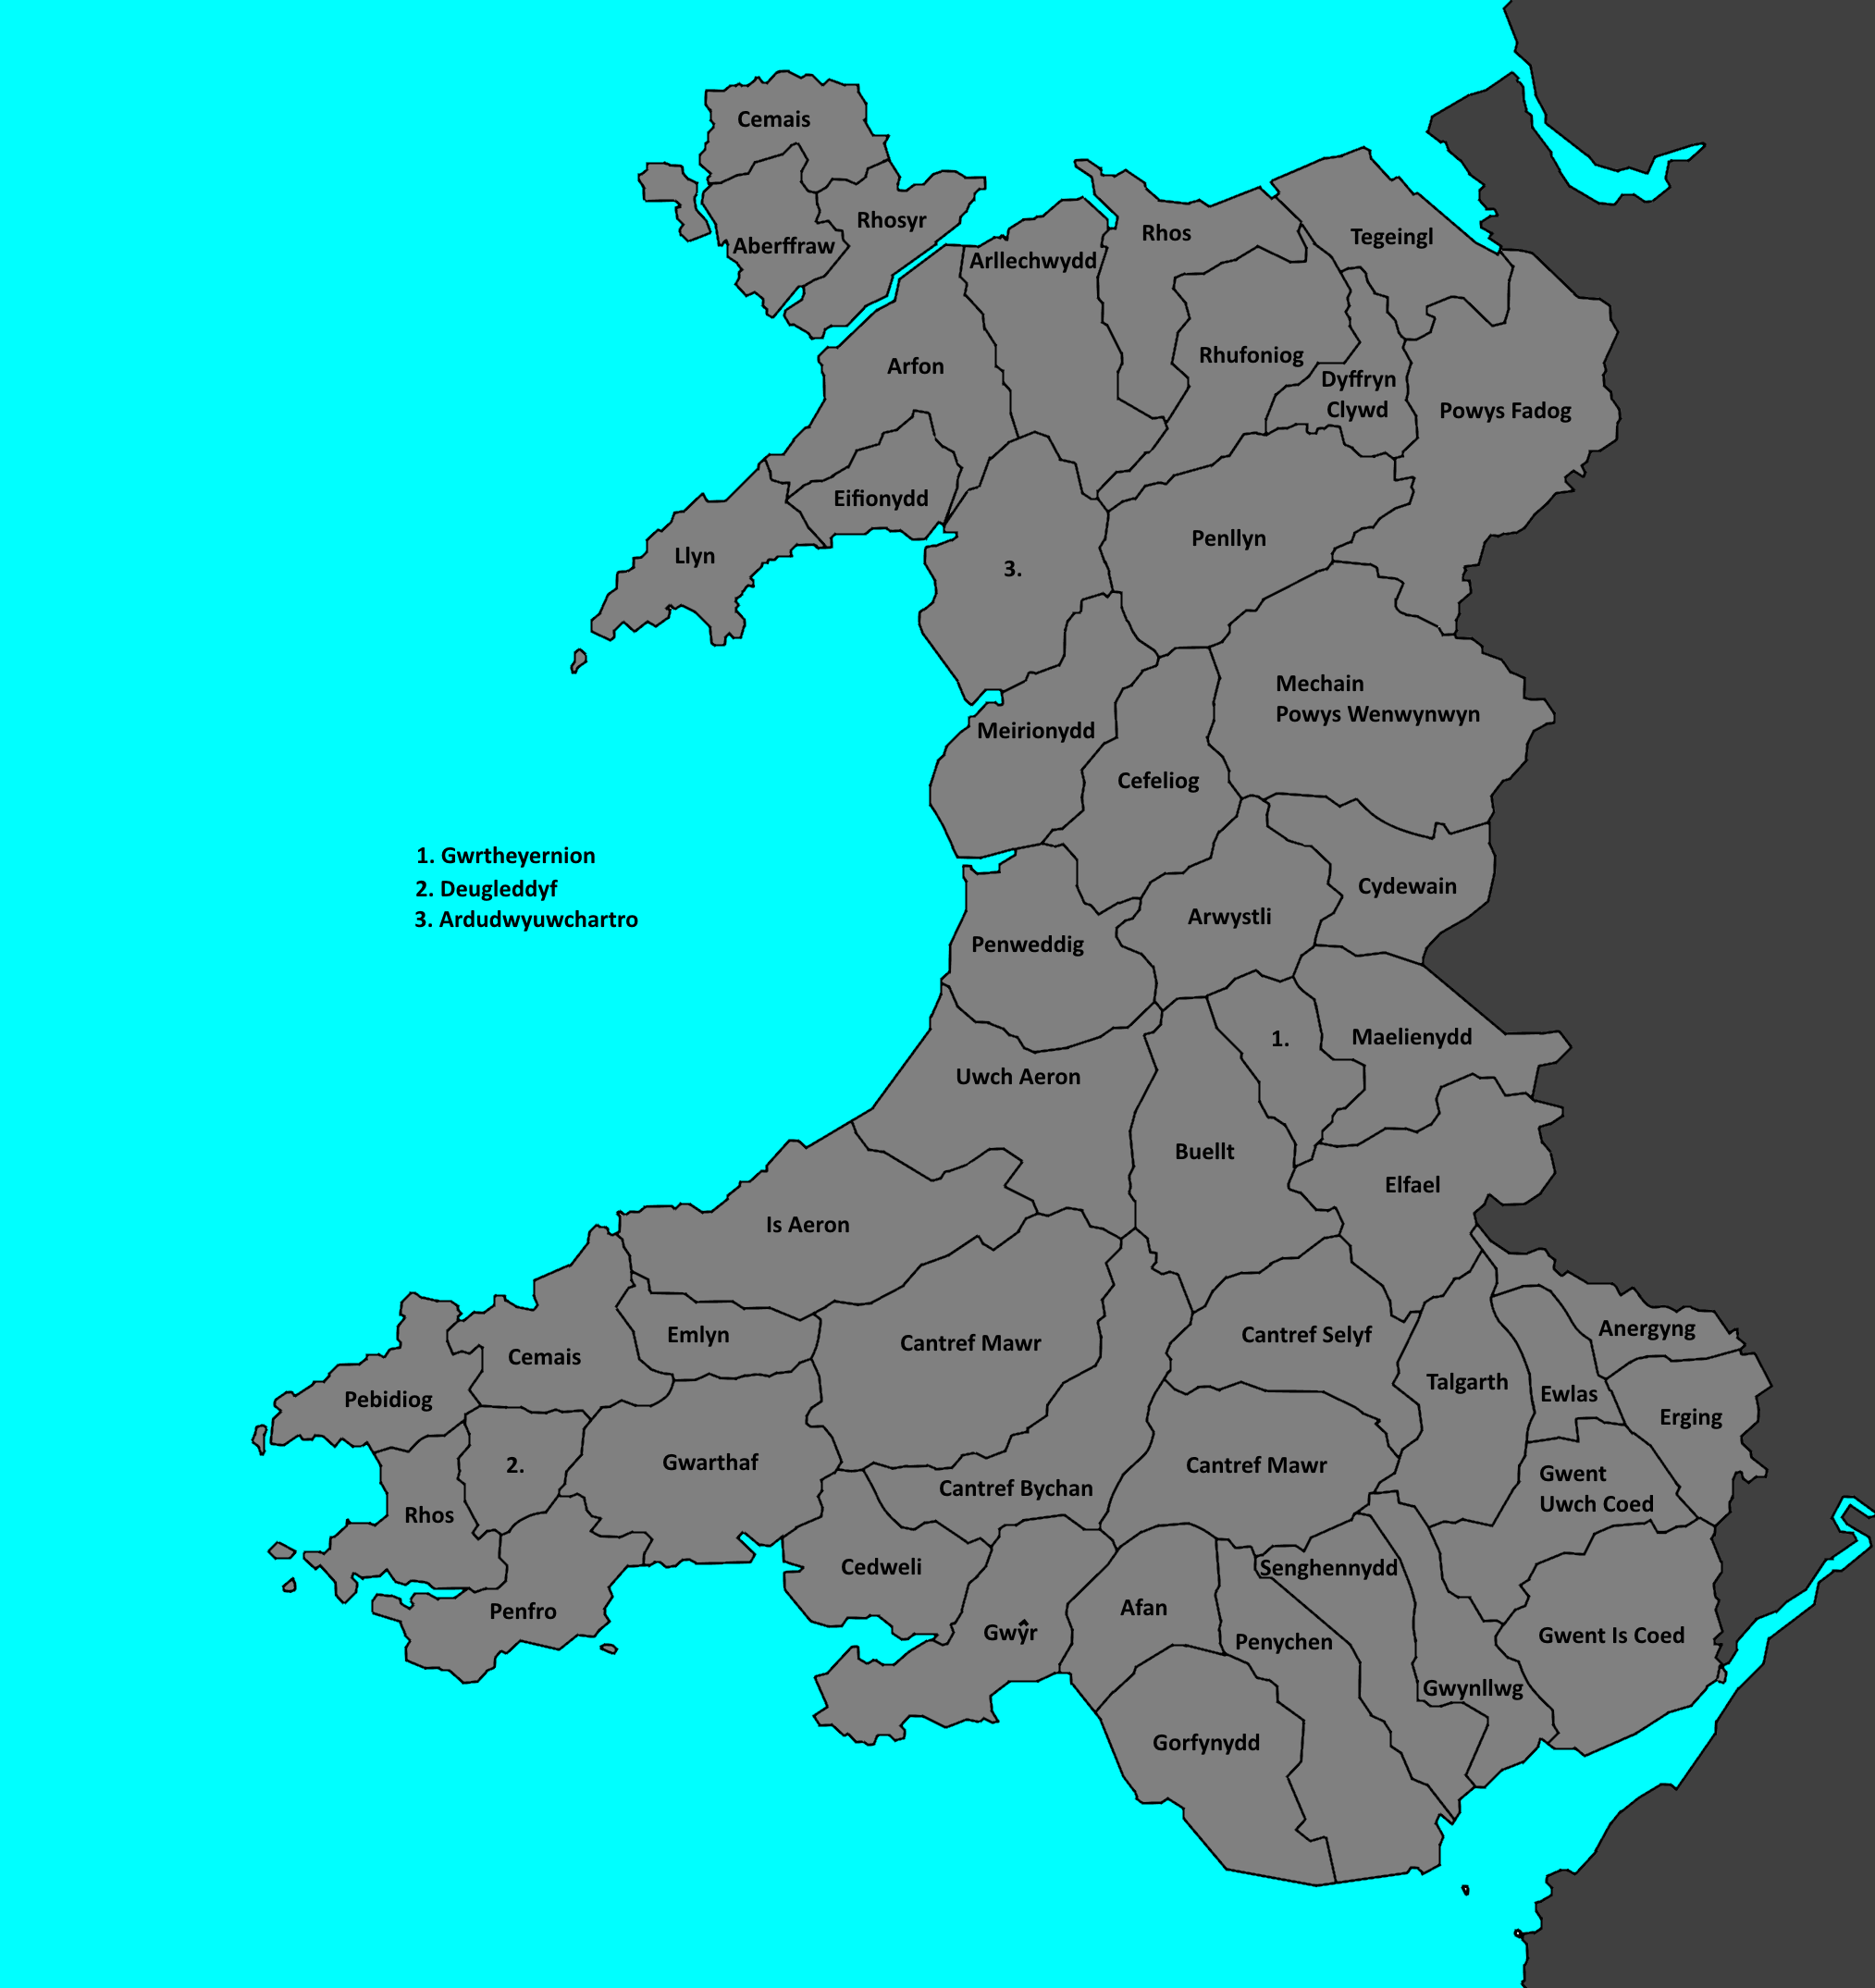 Pin by Dayle Dermatis on Wales Pinterest Wales and Wales map